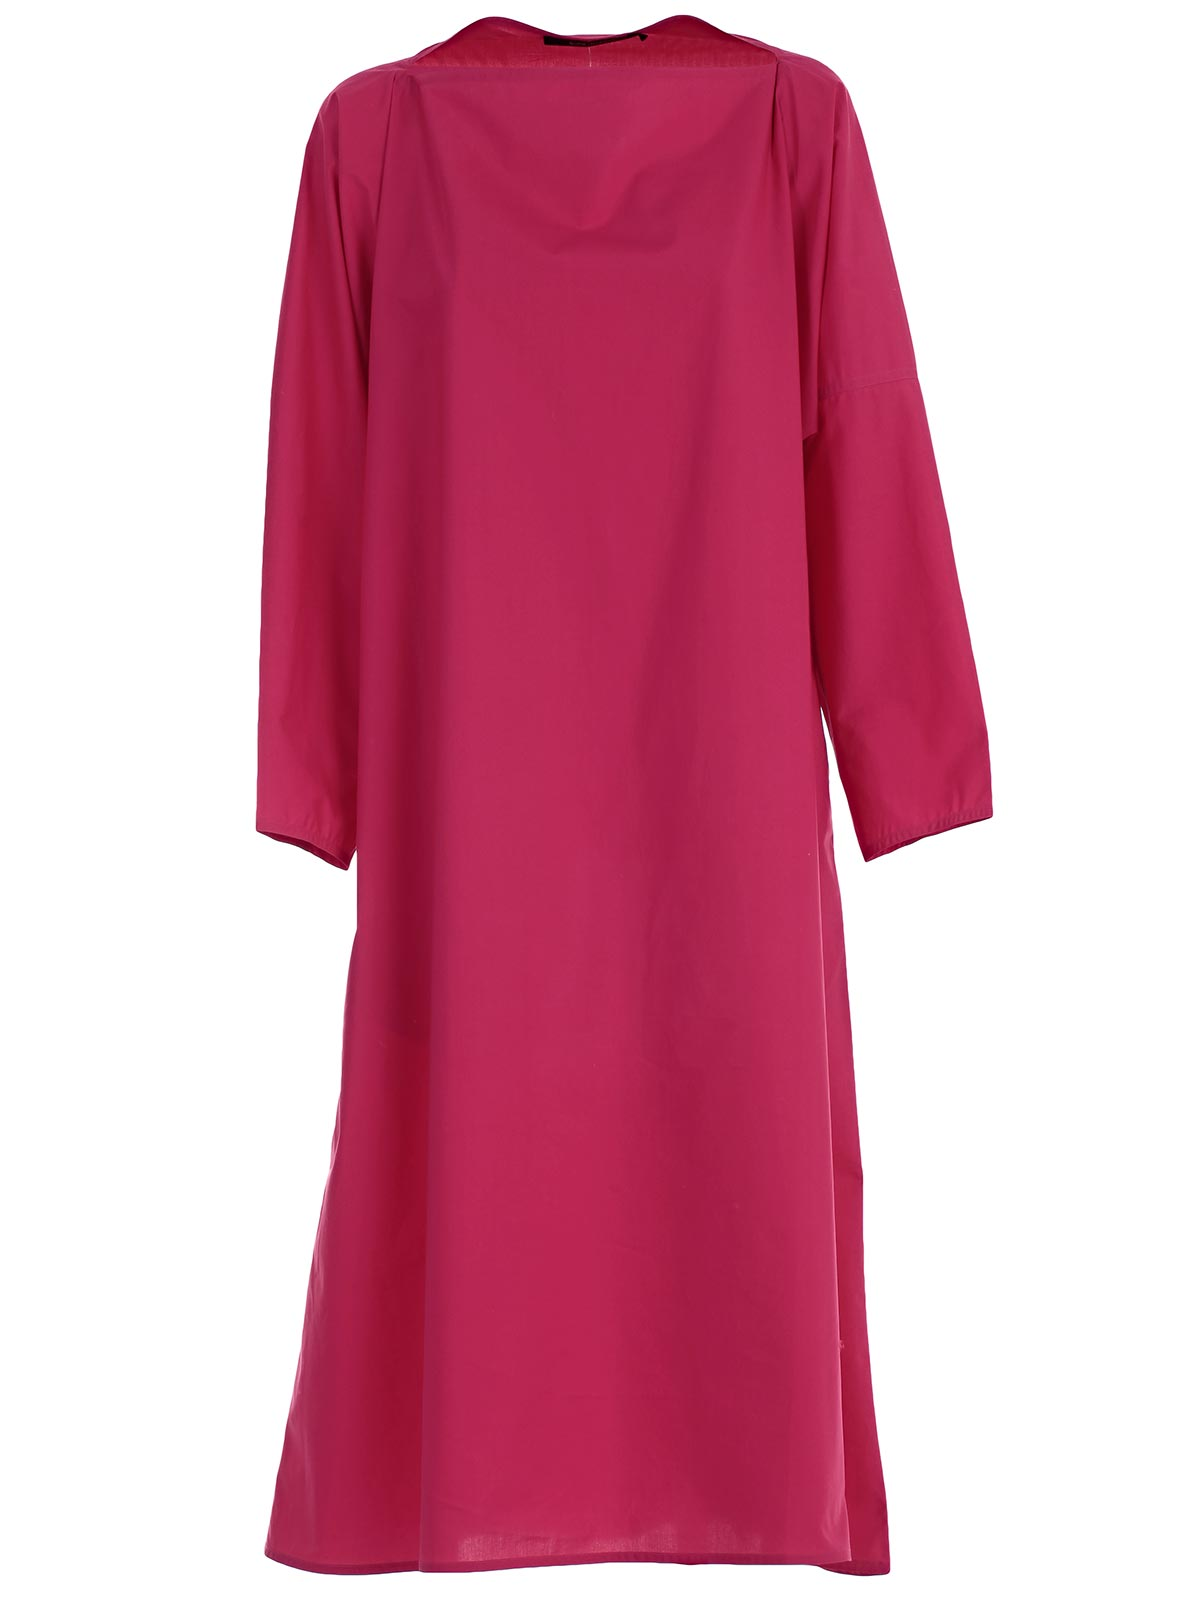 Picture of SOFIE D'HOORE DRESS